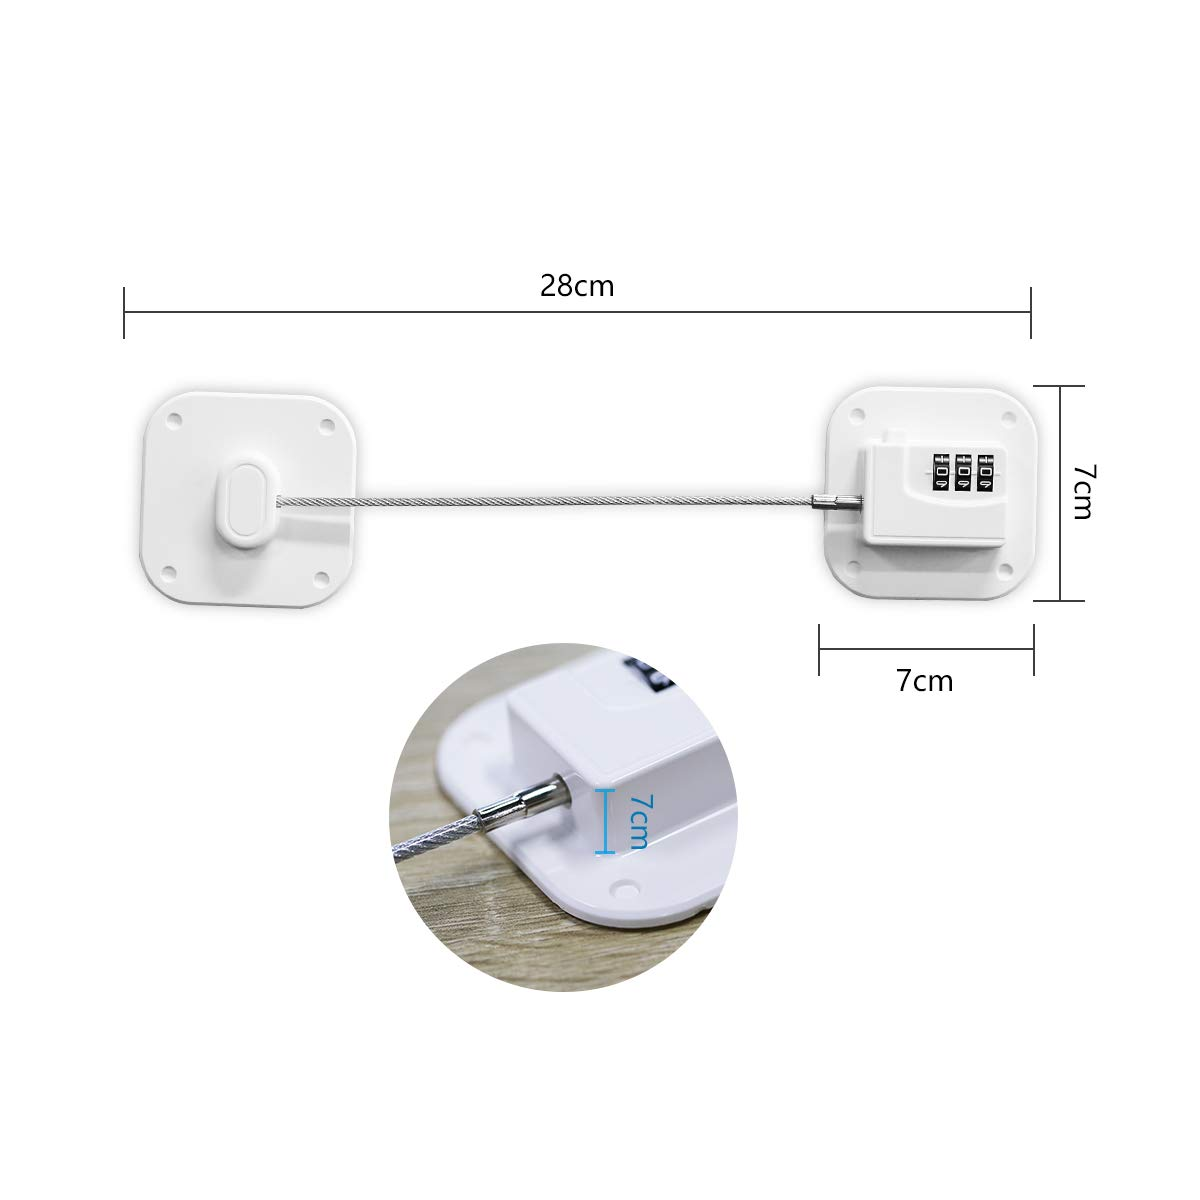 Refrigerator Lock, TONYHONEY Mini Fridge Lock with Digital Password Child Safety Cabinet Locks with 3M Strong Adhesive Apply for Freezer Door Cabinet File Drawer Cupboard White 2 Pack(White)